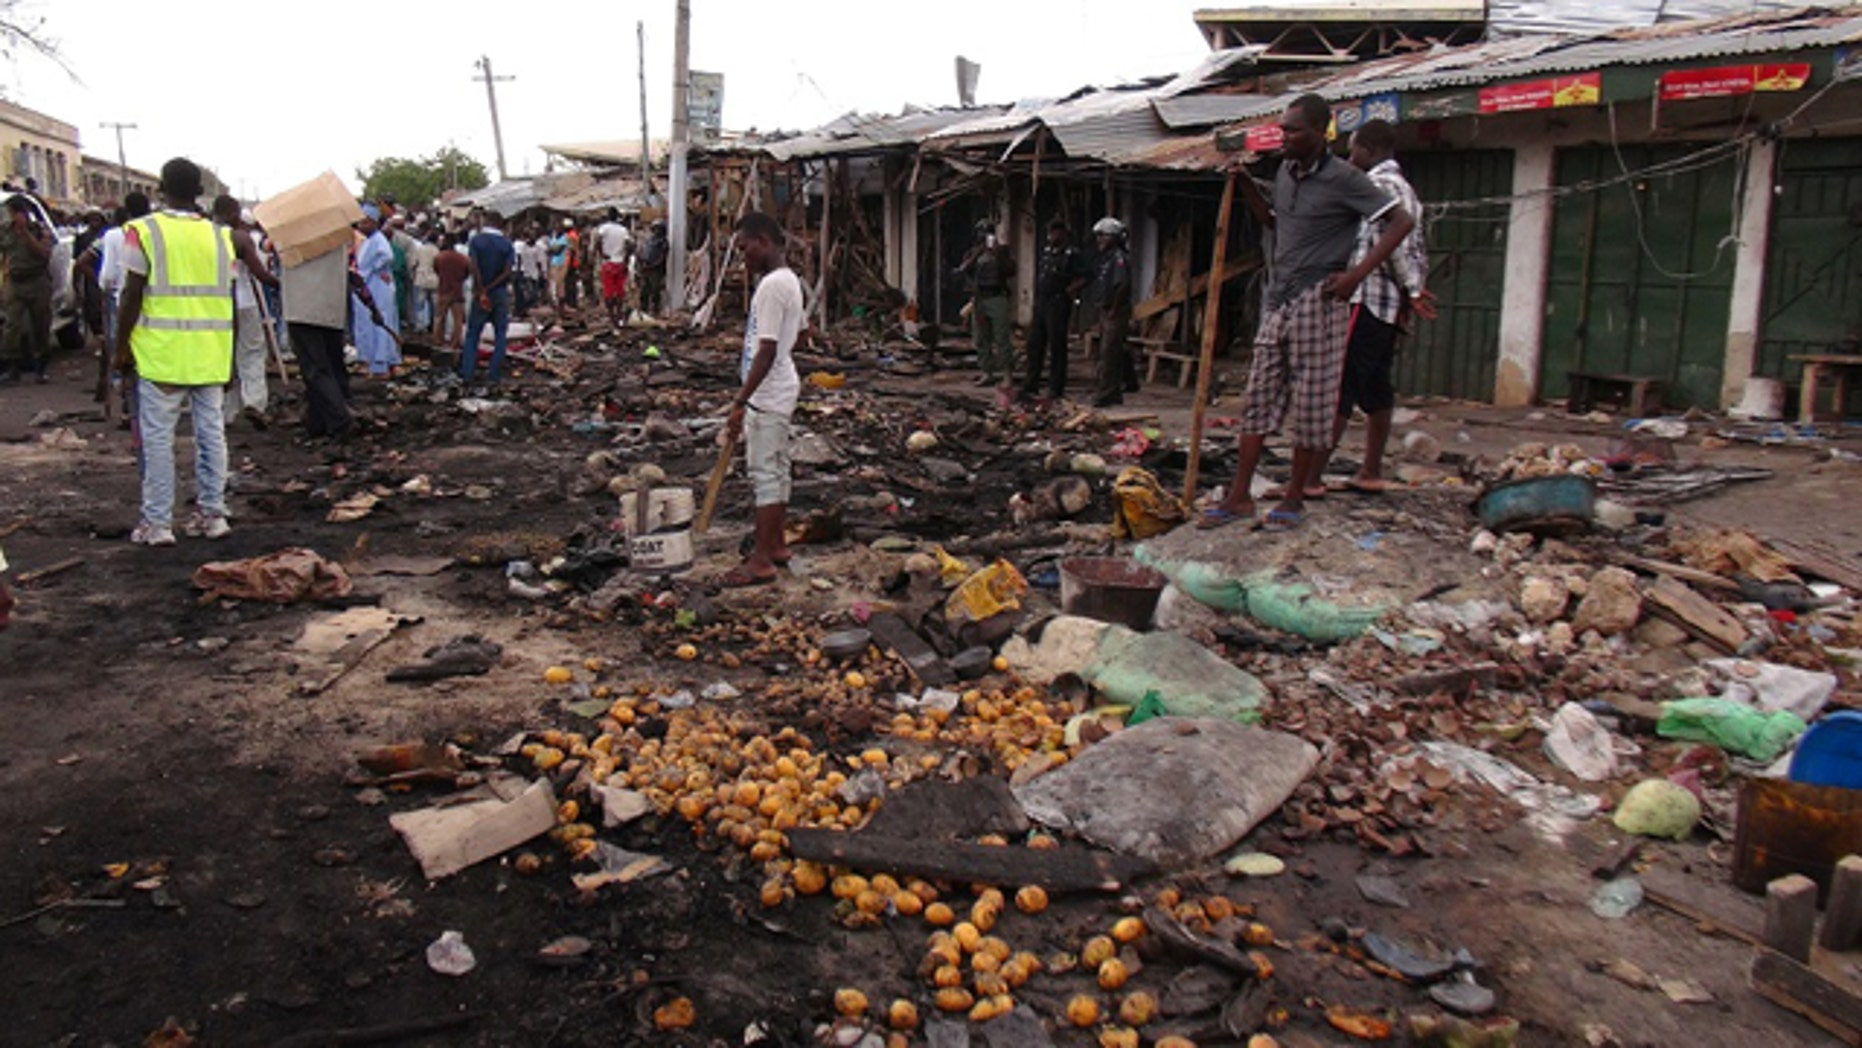 July 2, 2014: People gather at the scene of a car bomb explosion at the central market in Maiduguri, Nigeria. ( AP Photo/Jossy Ola)